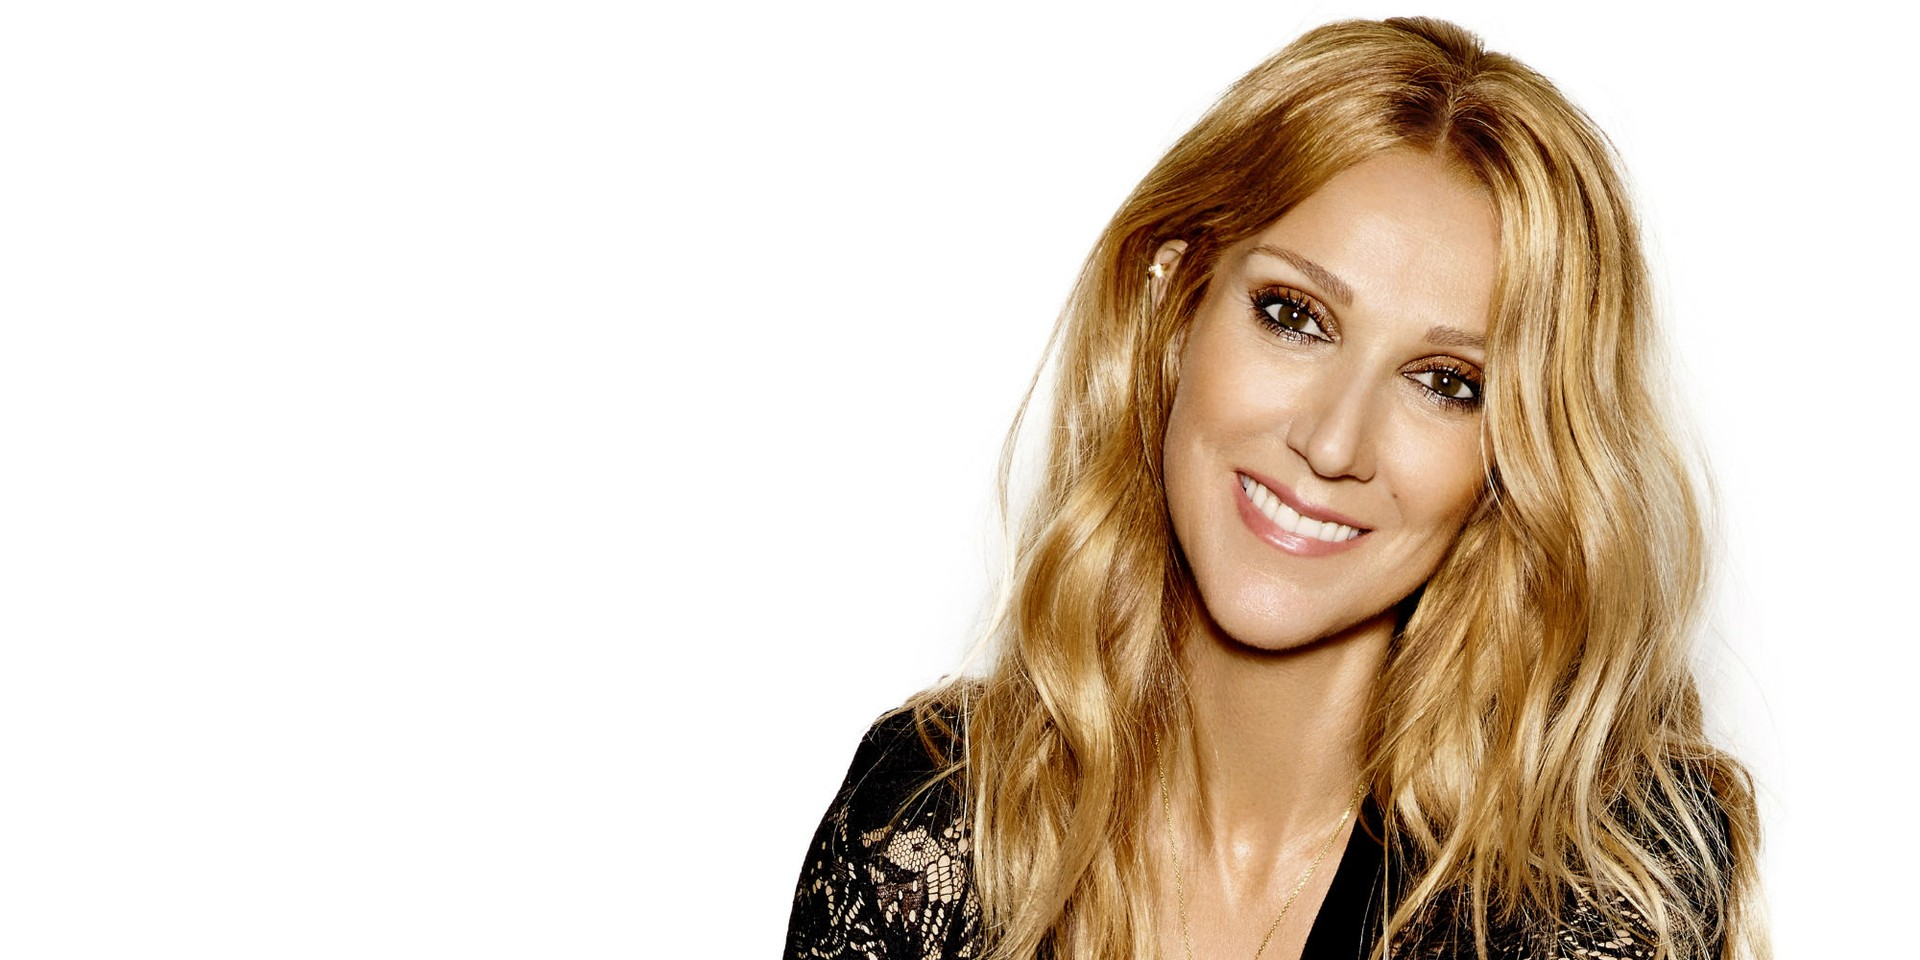 A new Celine Dion biopic titled The Power Of Love has been announced